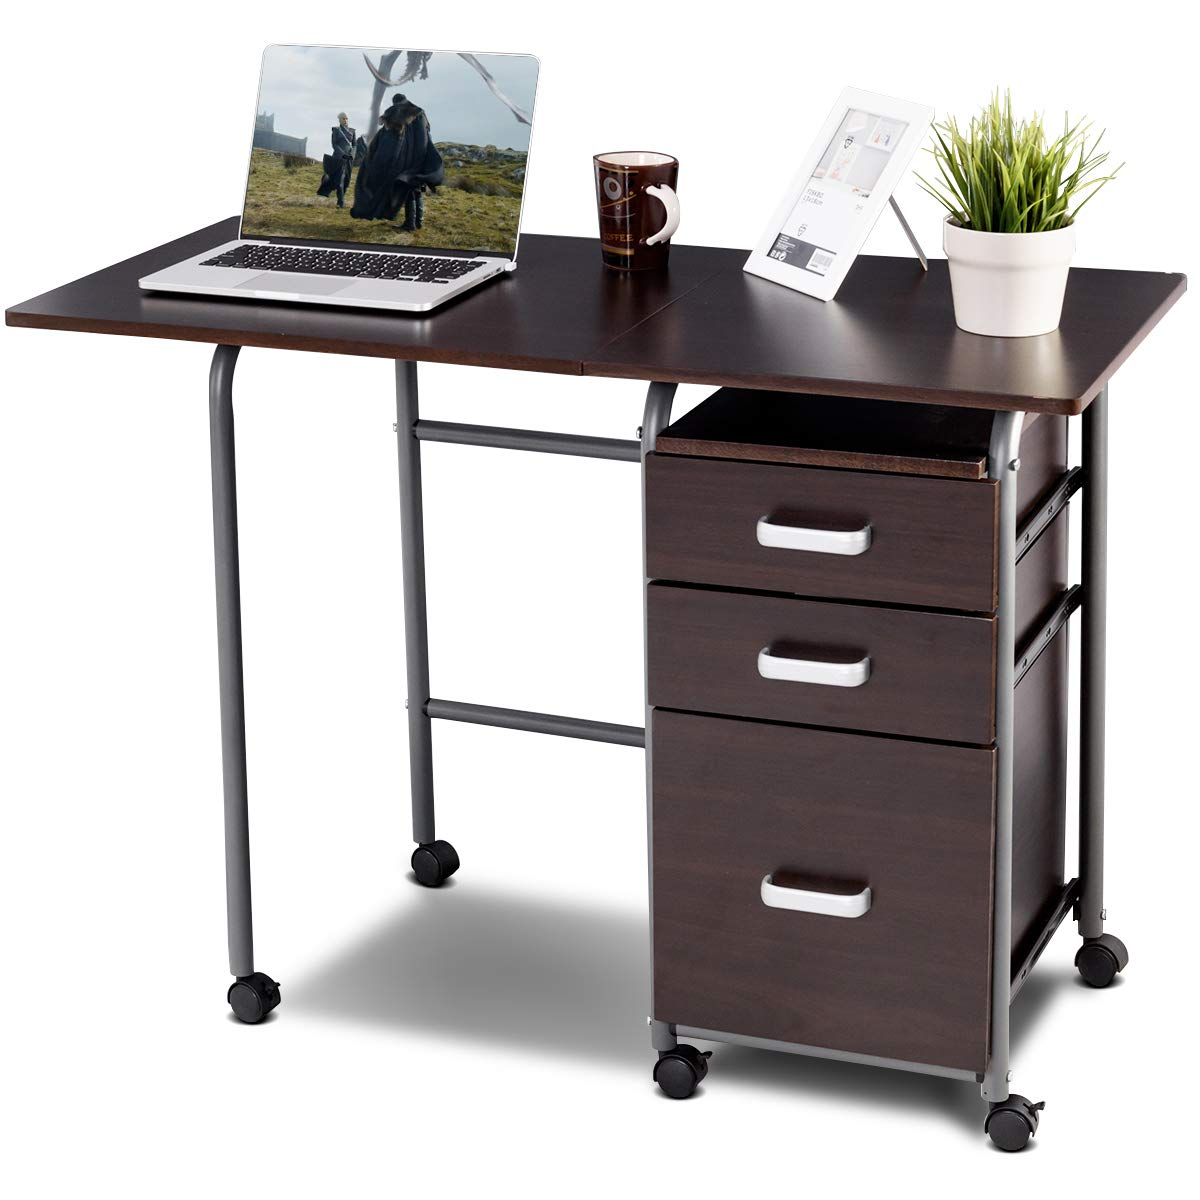 Tangkula Foldable Computer Desk, Home Office Computer Table with 3 Ample Storage Drawers, Laptop Desk Writing Table, Portable Space Saving Compact Desk for Dome Apartment, Folding Table (Brown) by Tangkula